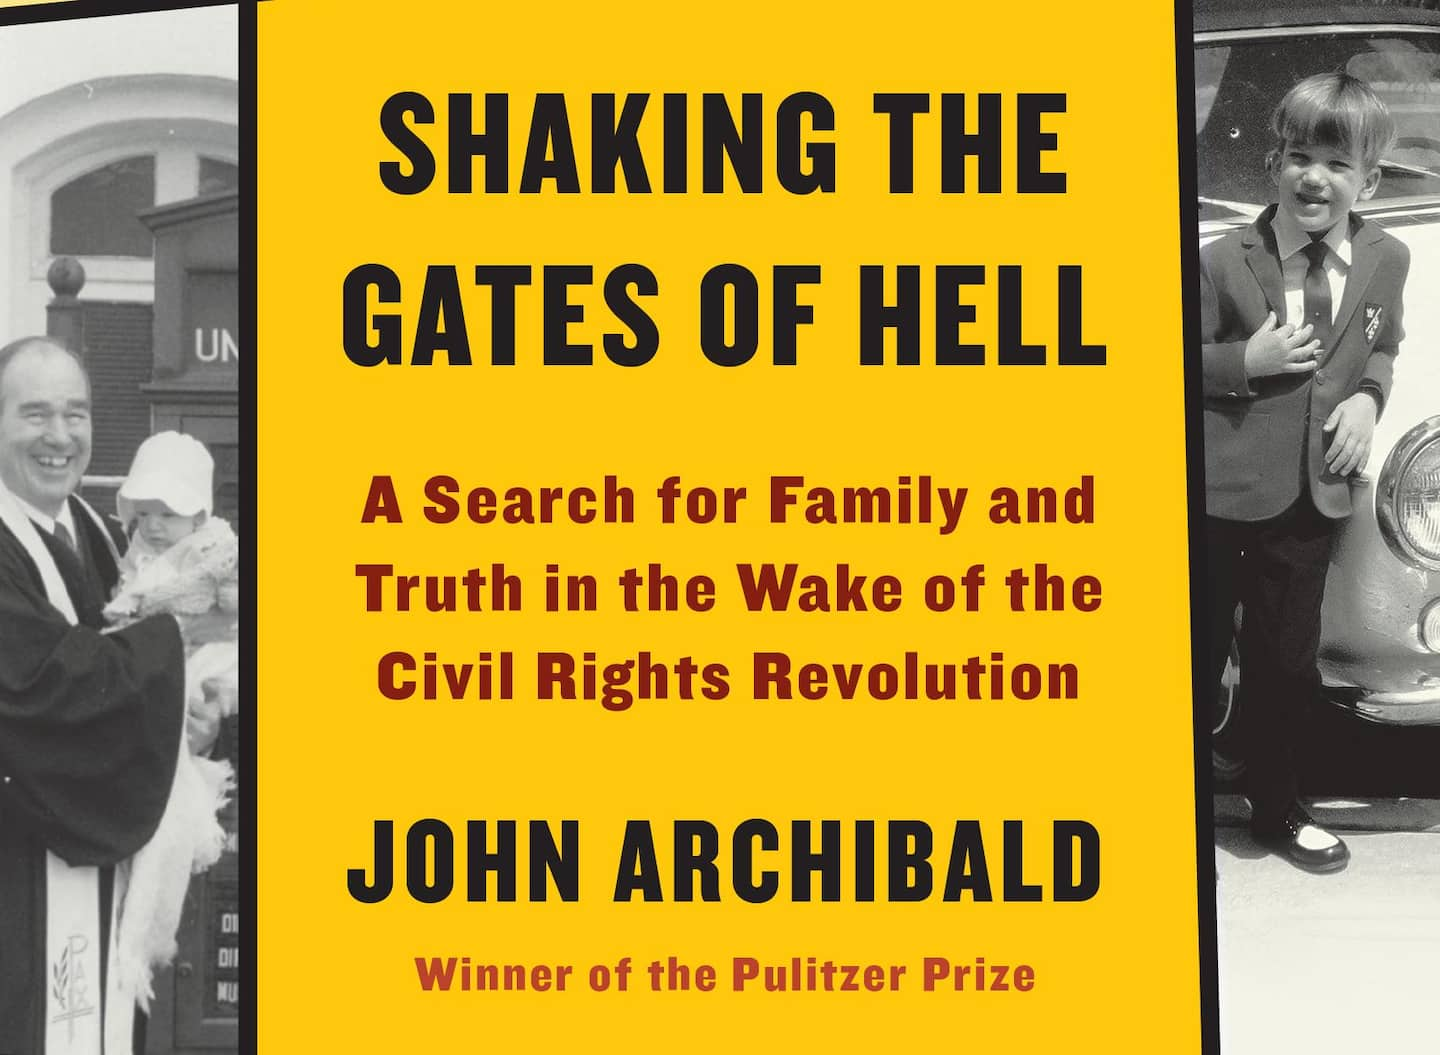 'Shaking the Gates of Hell,' by John Archibald book review